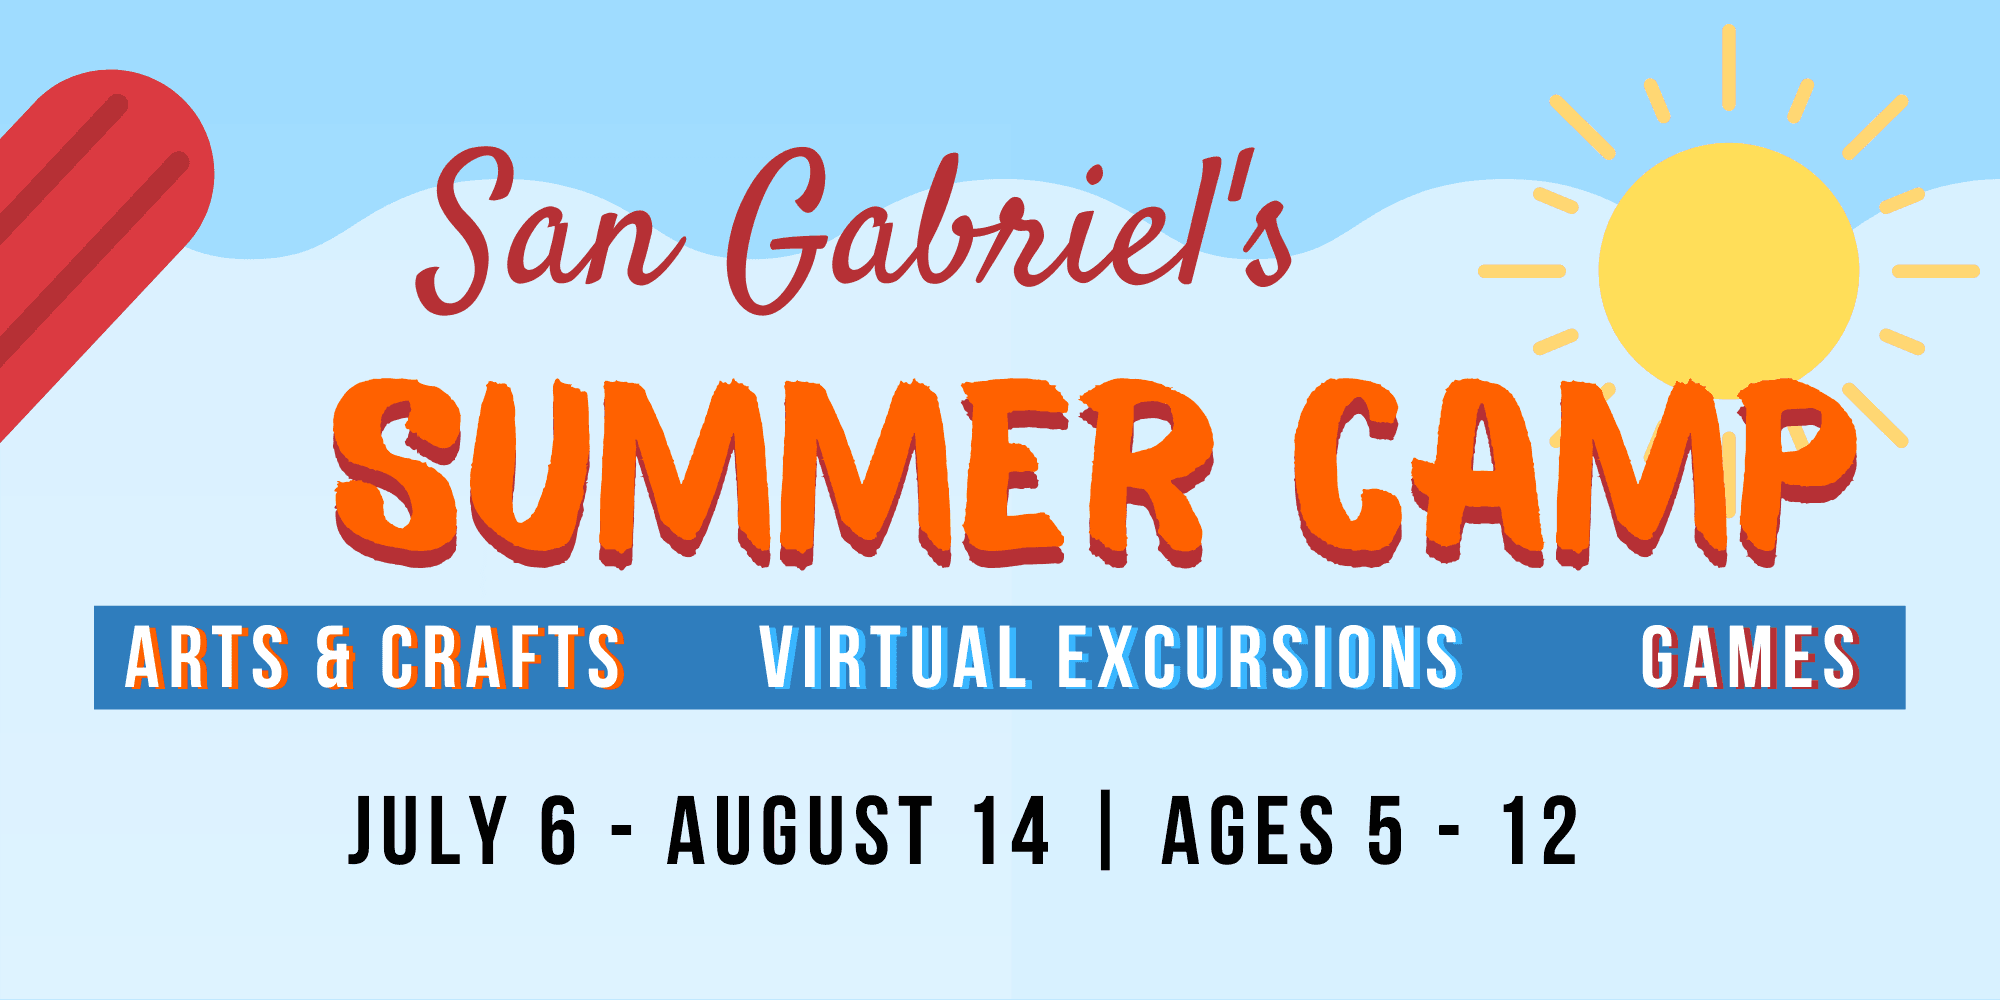 Summer Camp- Arts & Crafts, Virtual Excursions & Games